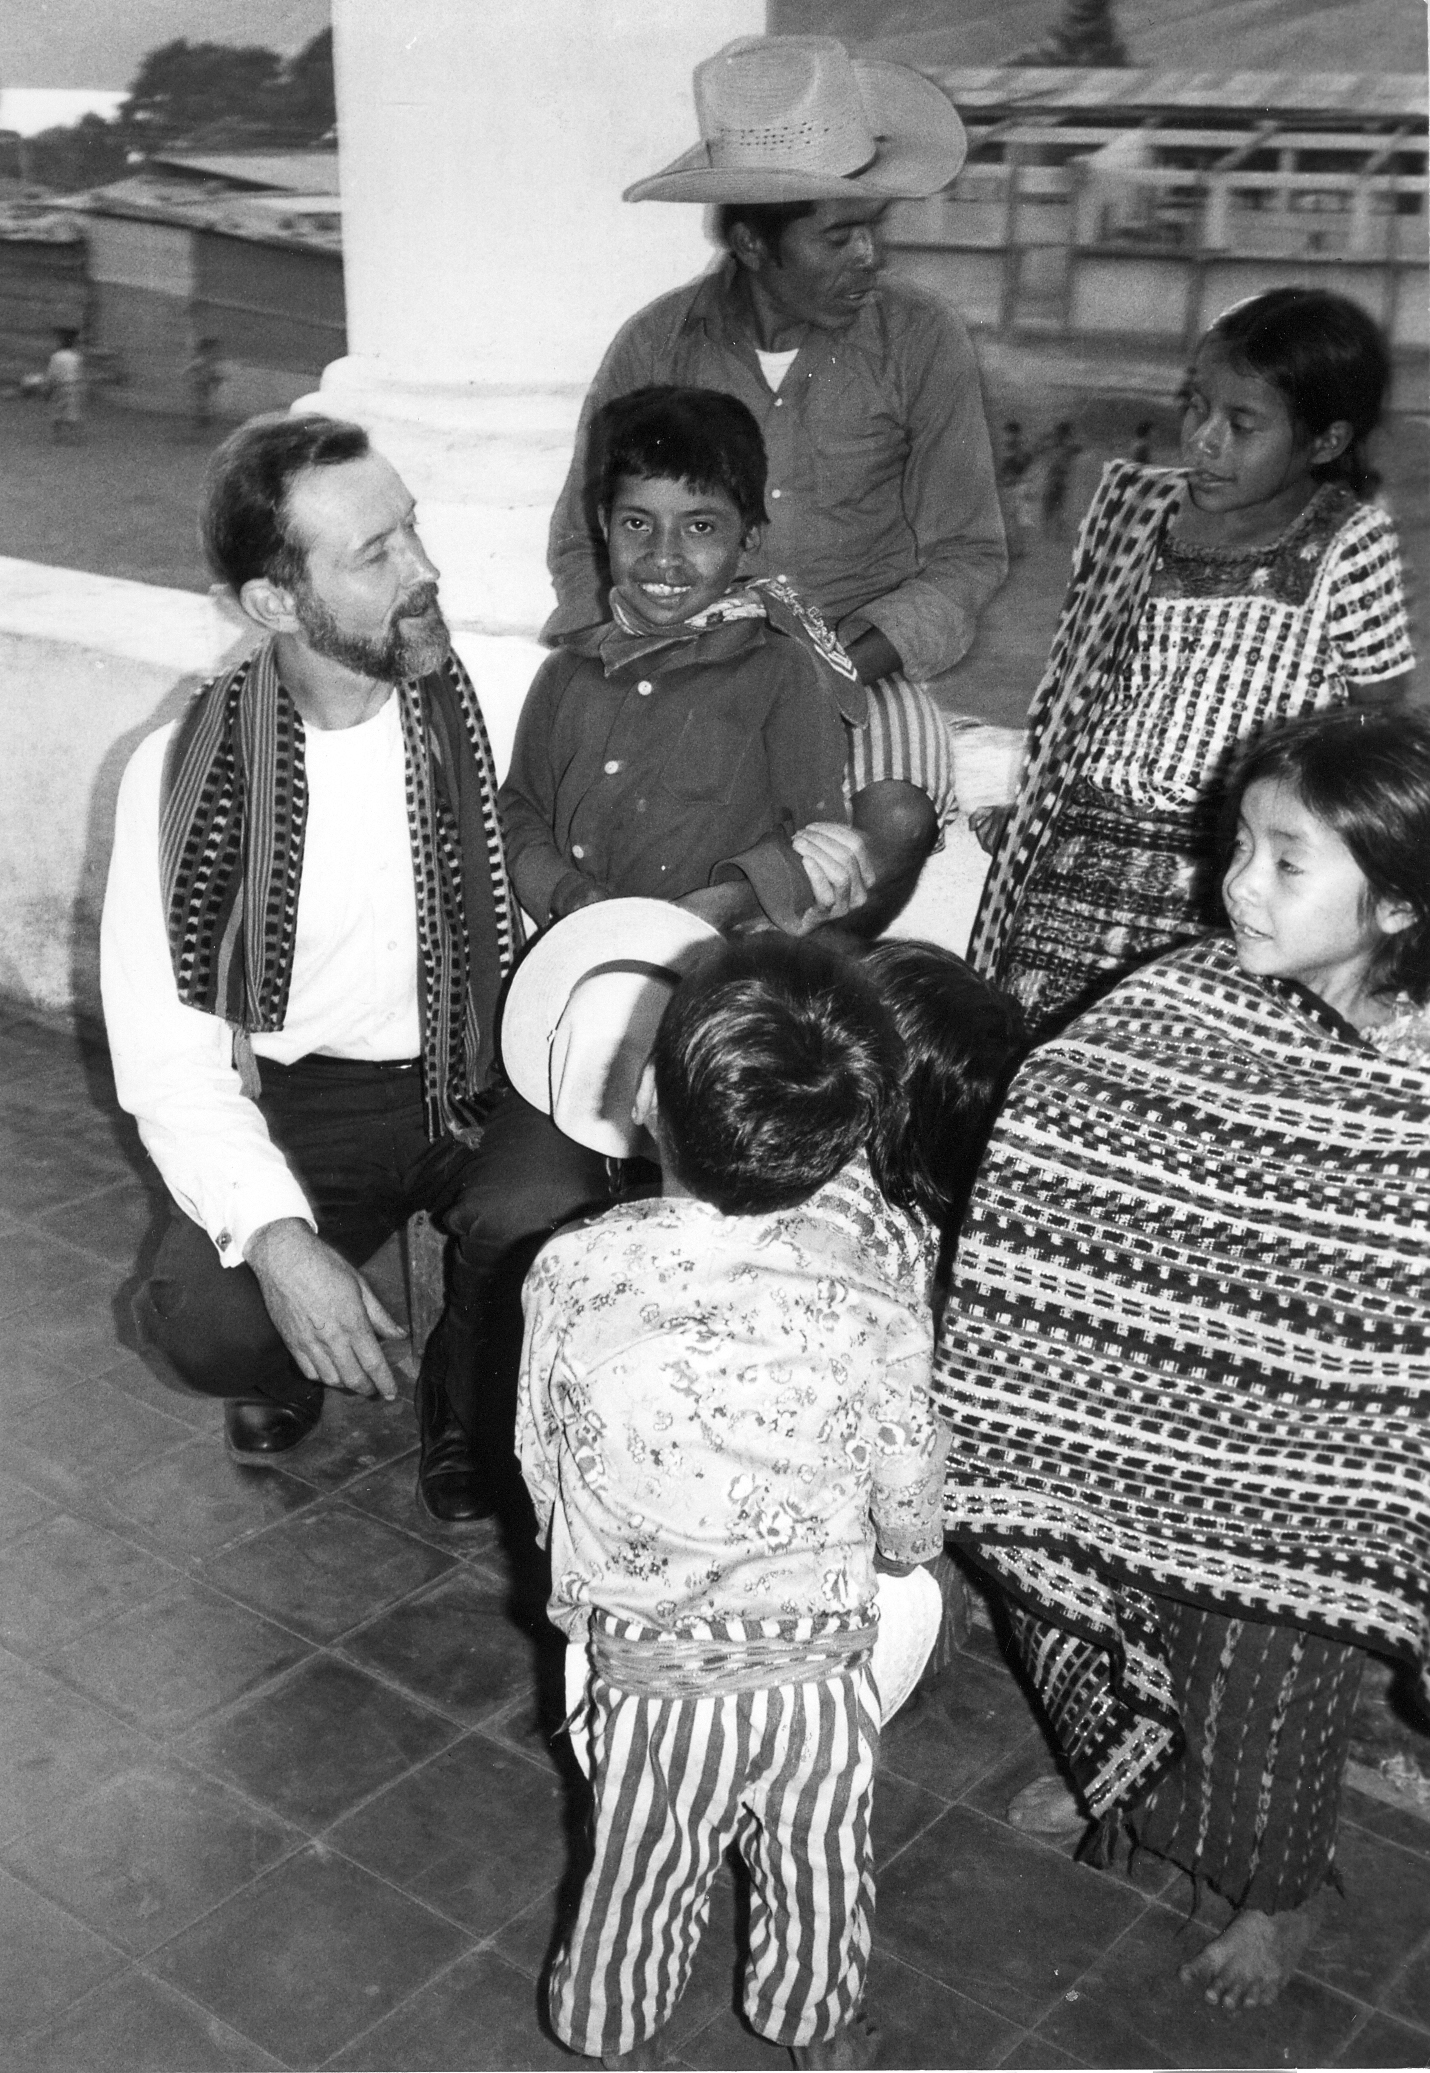 Father Stanley Rother, a priest of the Oklahoma City Archdiocese who was brutally murdered in 1981 in the Guatemalan village where he ministered to the poor, is pictured in an undated photo. The Archdiocese of Oklahoma City announced the North American priest will be beatified Sept. 23 in Oklahoma. (CNS photo/Archdiocese of Oklahoma City archives)